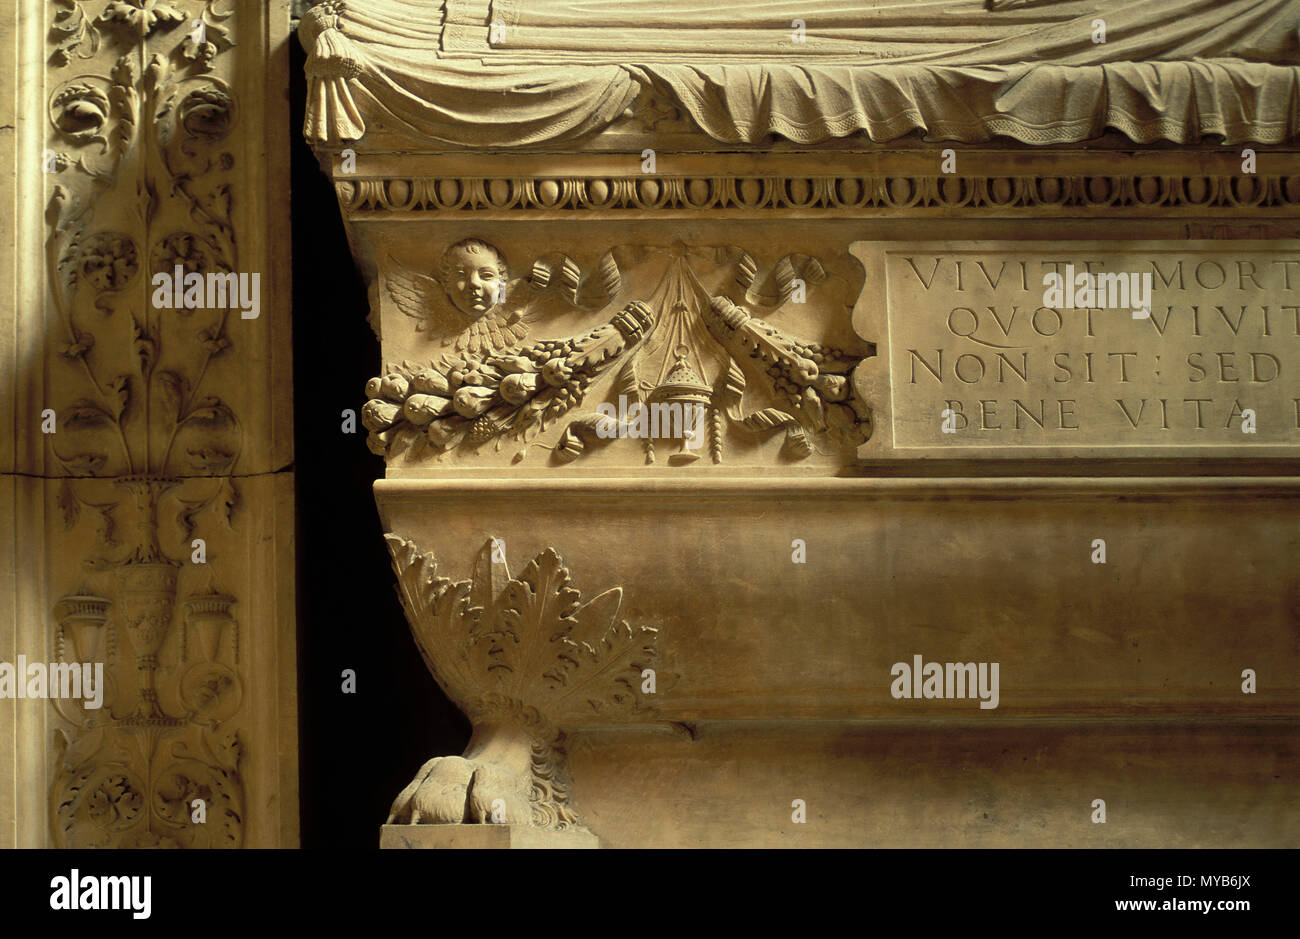 Cenotaph in a chapel off the south aisle, detail, Santa Maria sopra Minerva (tomb), by Andrea Bregno, Rome, Italy Stock Photo